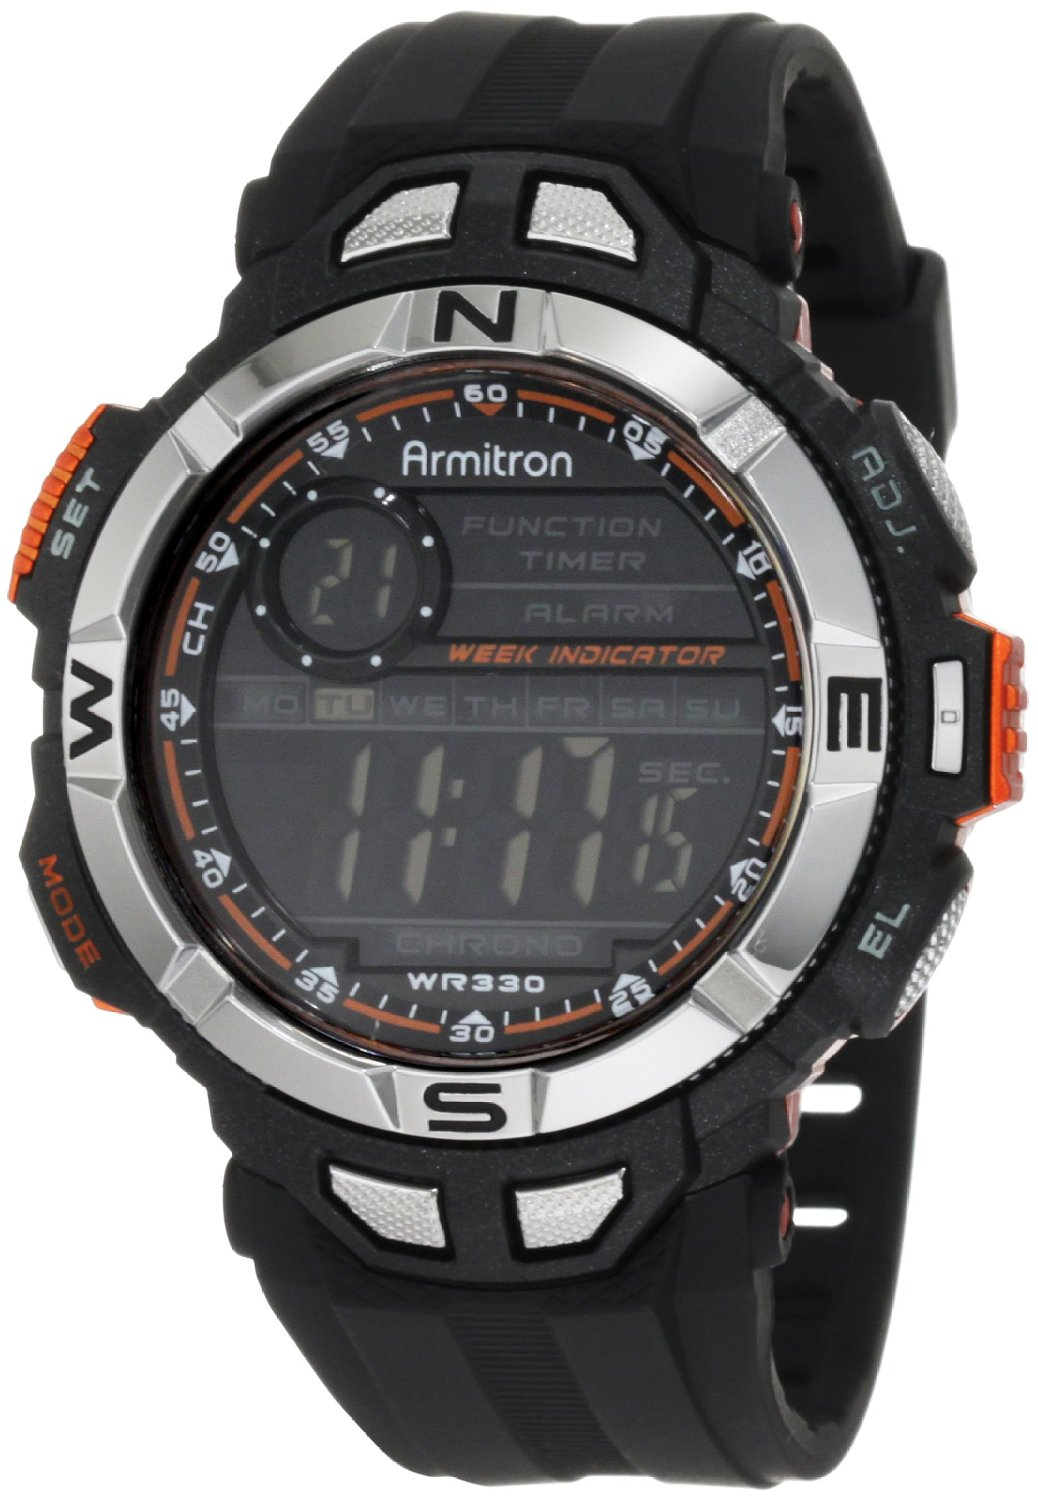 Armitron Sport Men's 408233ORG Chronograph Multi-Function Orange Accented Black Resin Watch